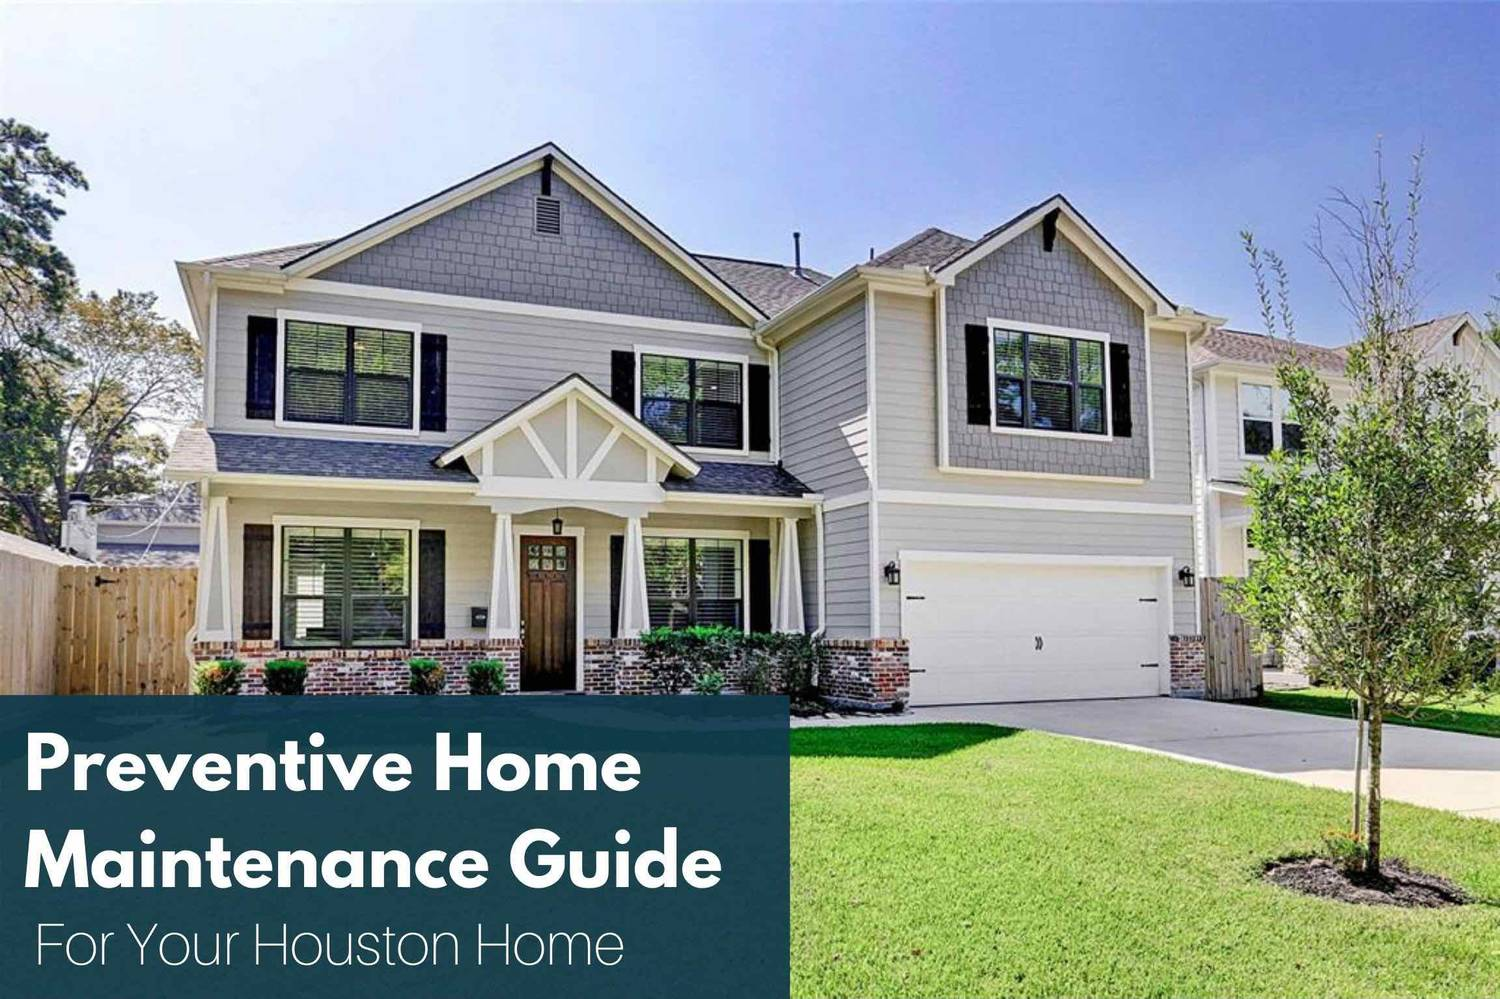 Houston Home Sellers Guide Series #4: Preventive Home Maintenance Guide For Your Houston Home